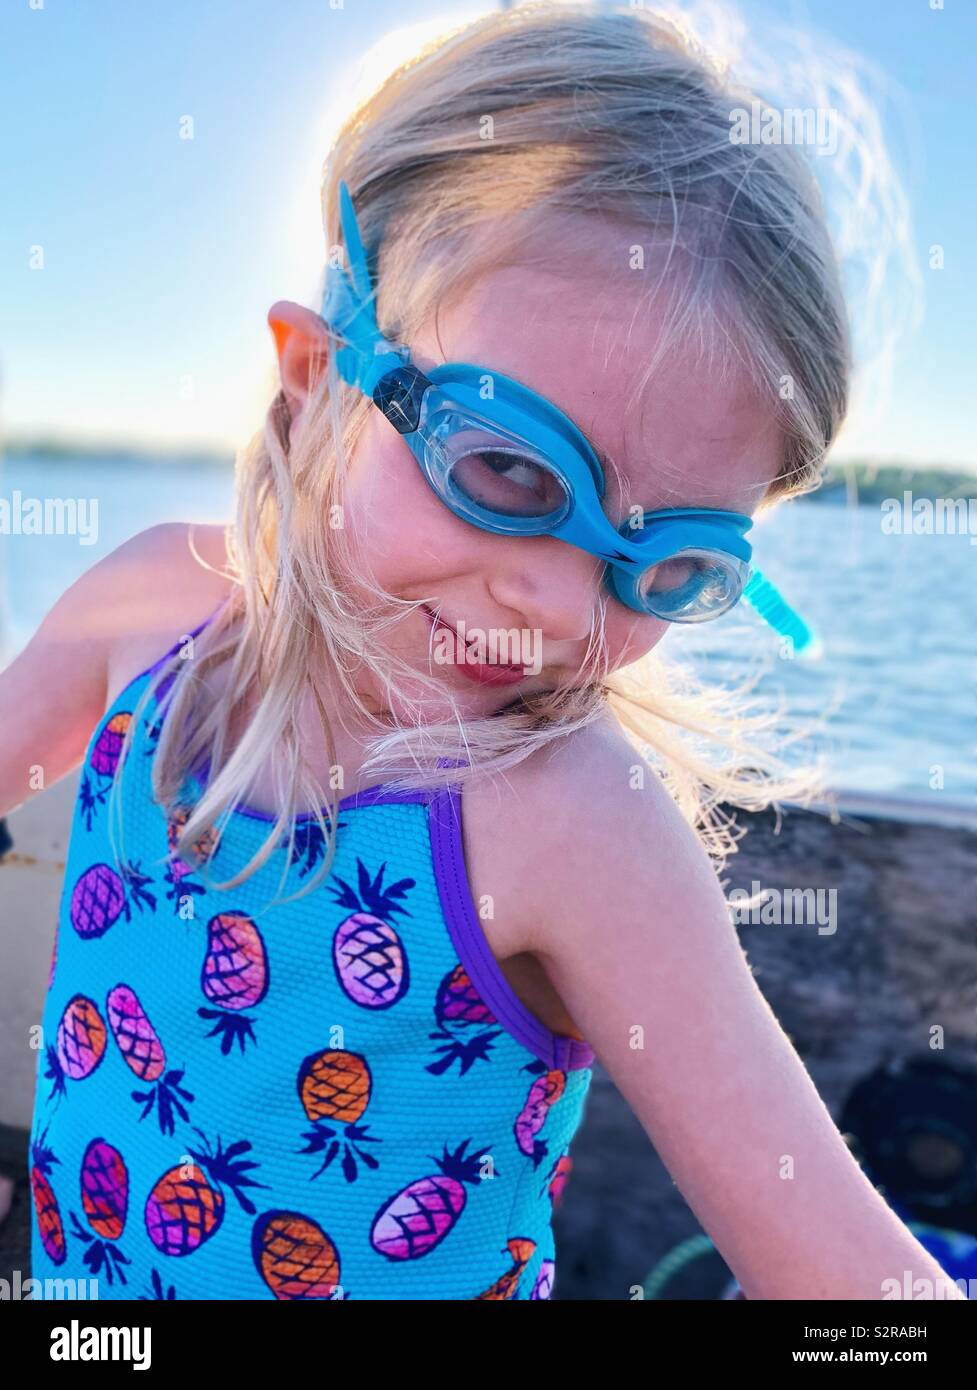 Young blonde girl wearing blue swim goggles and a swimsuit at the lake. Stock Photo